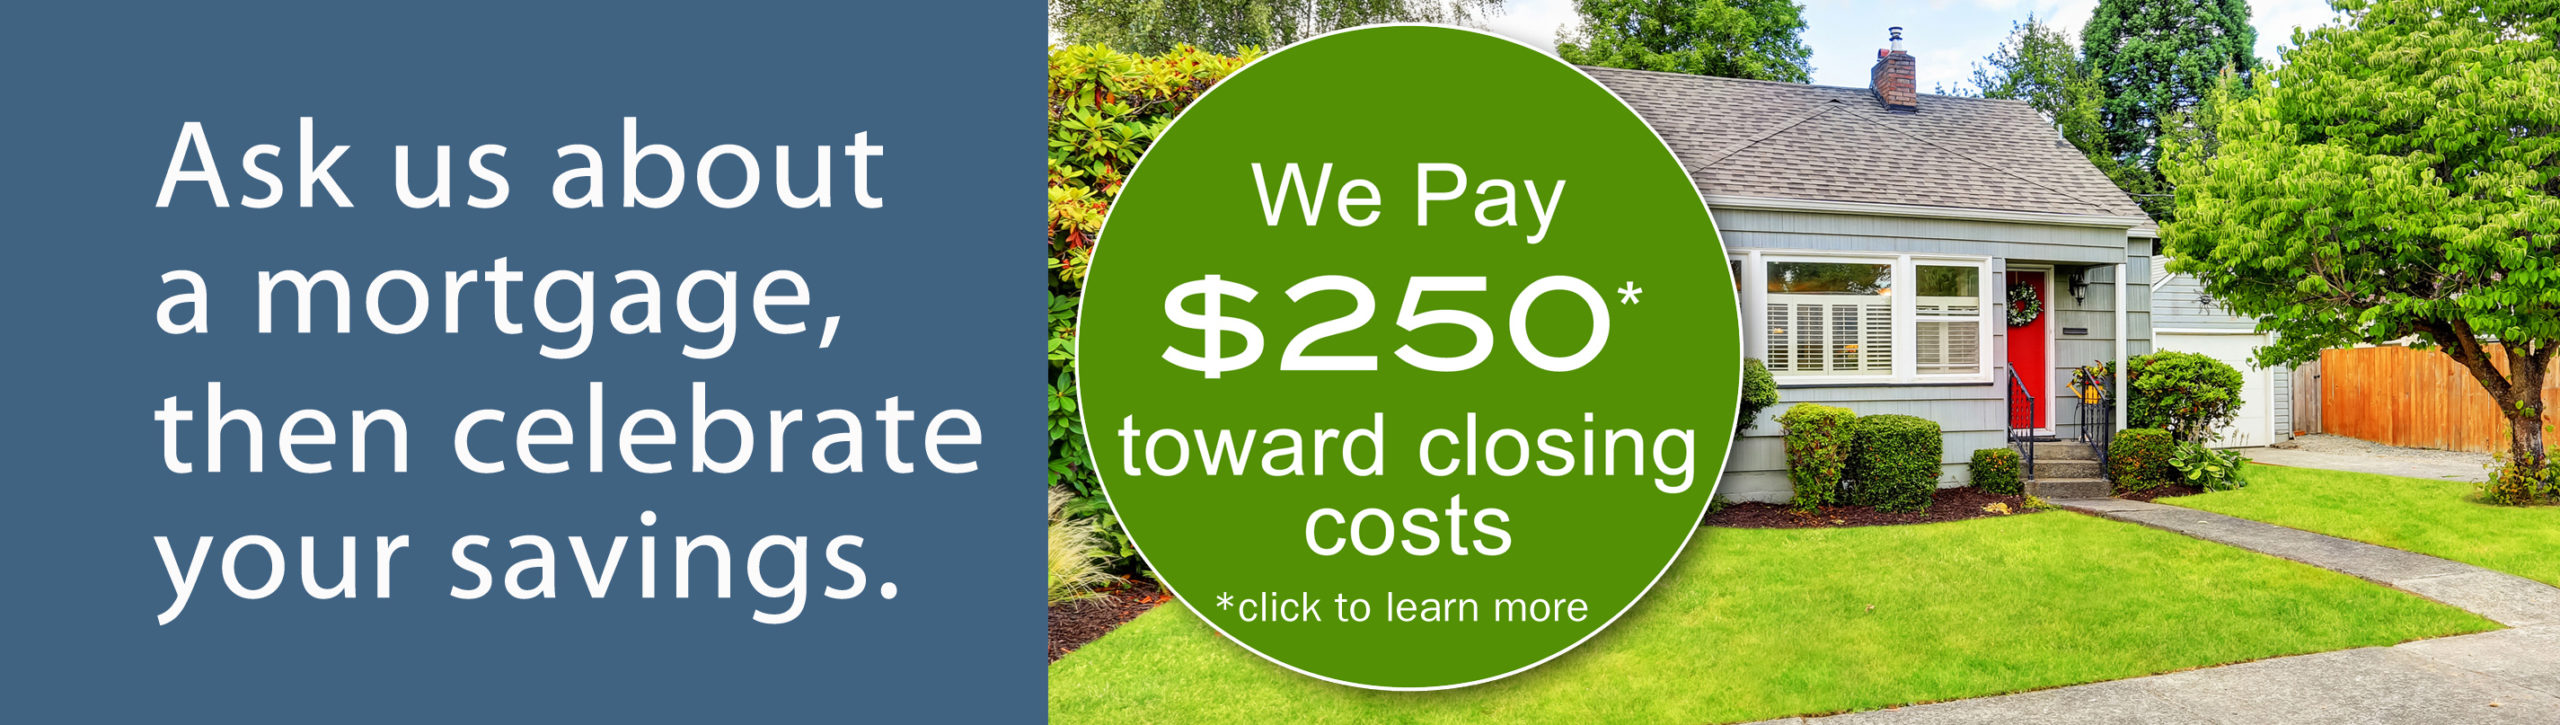 Ask us about a mortgage, then celebrate your savings.